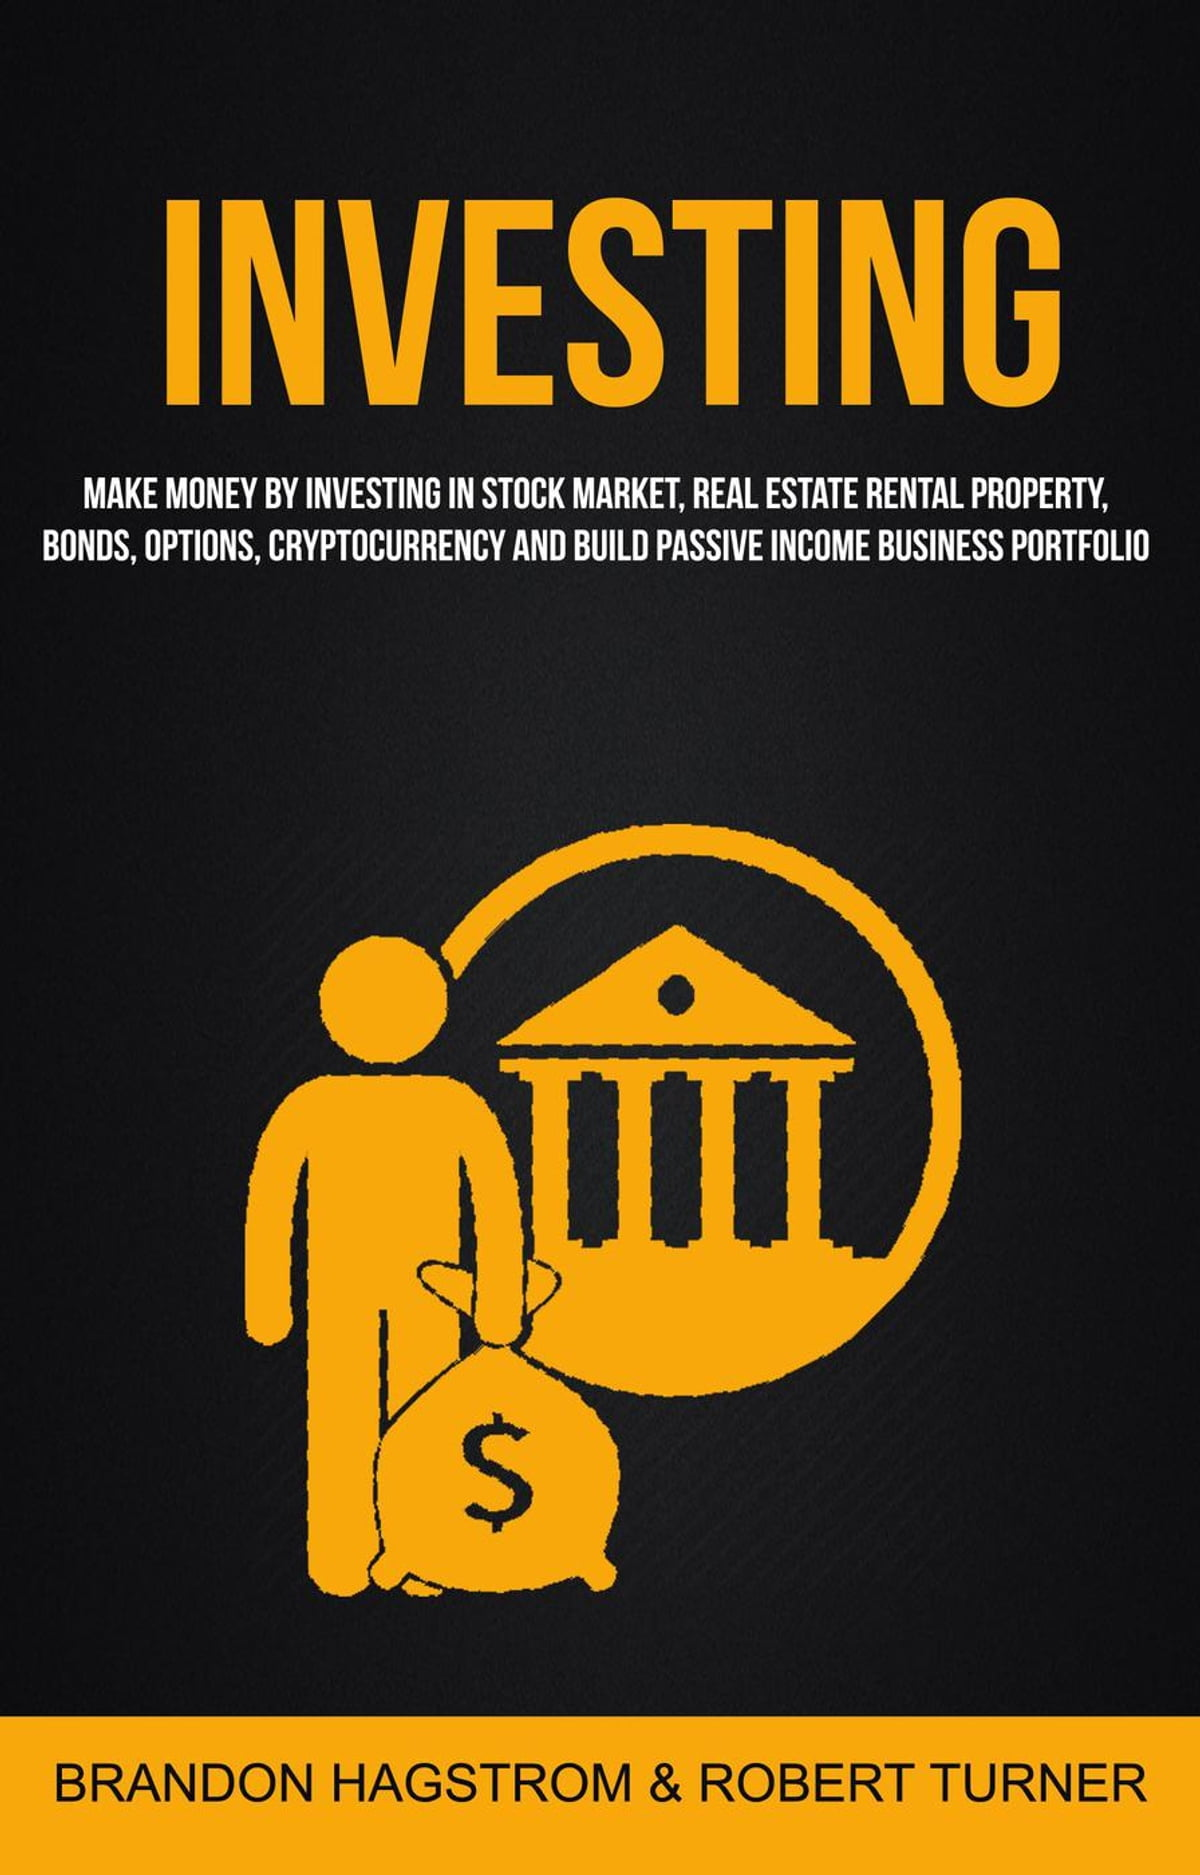 Investing Make Money By Investing In Stock Market Real Estate Rental Property Bonds Options Cryptocurrency And Build Passive Income Business Portfolio Ebook By Brandon Hagstrom 9781386392392 Rakuten Kobo United States